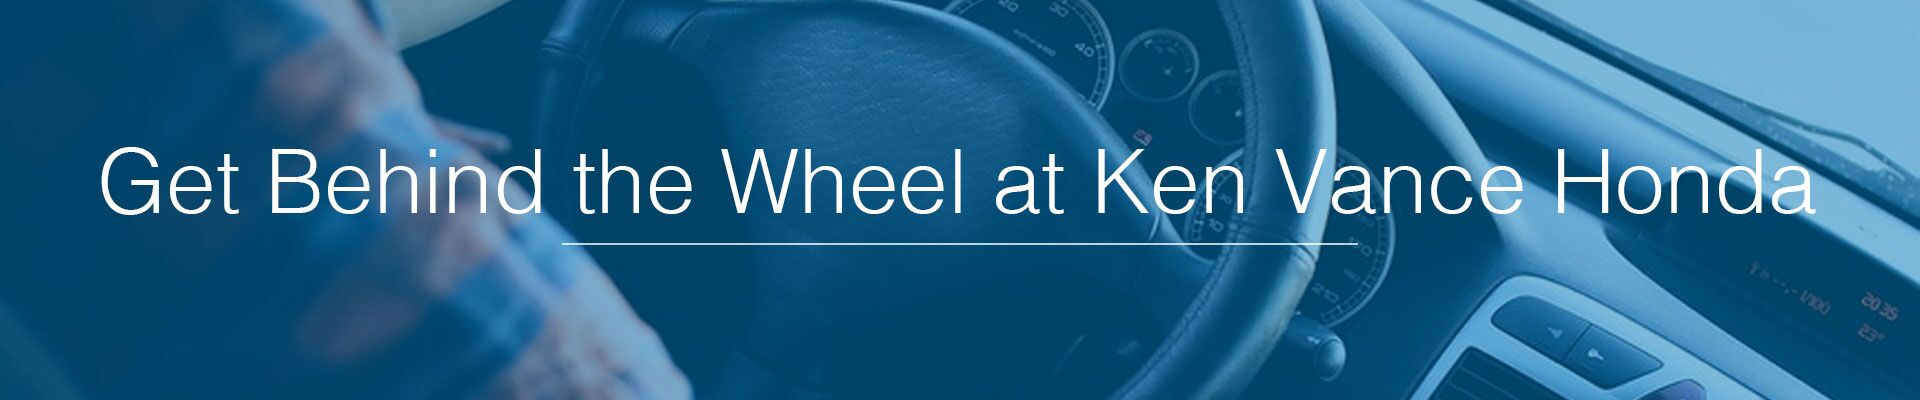 Get Behind the Wheel at Ken Vance Honda